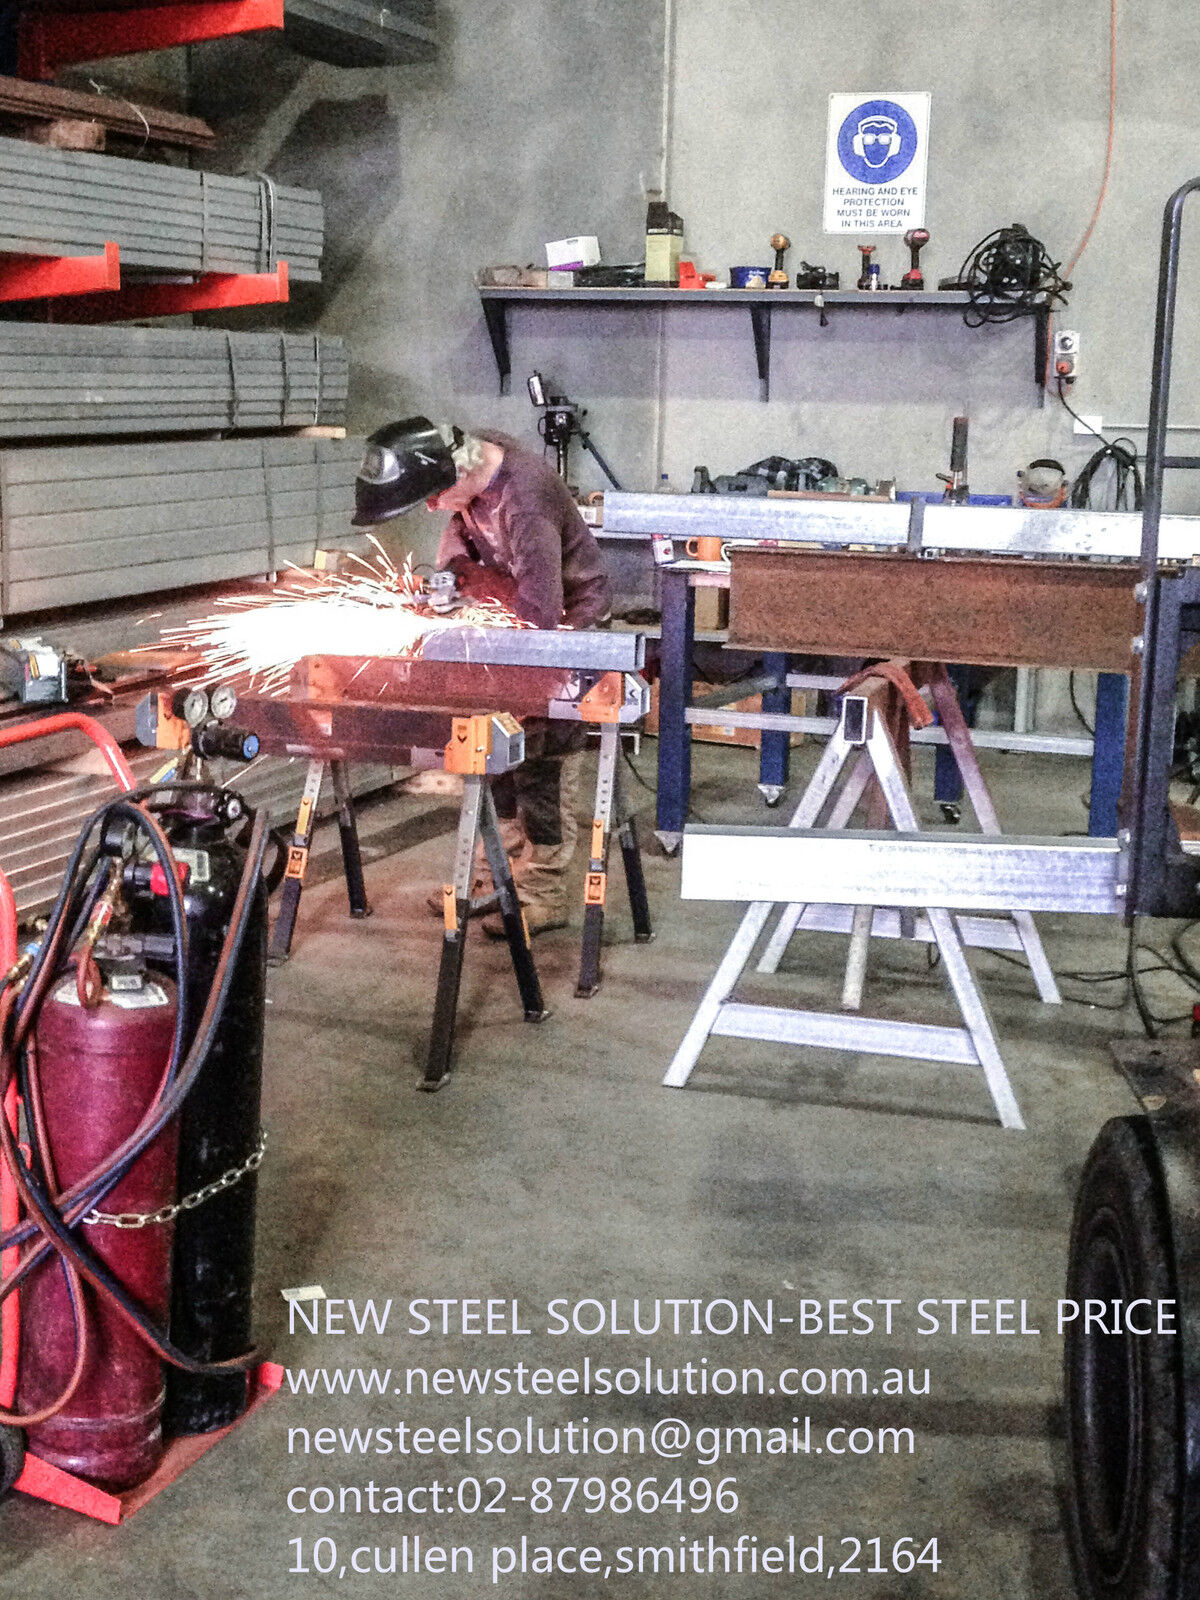 NEW STEEL SOLUTION